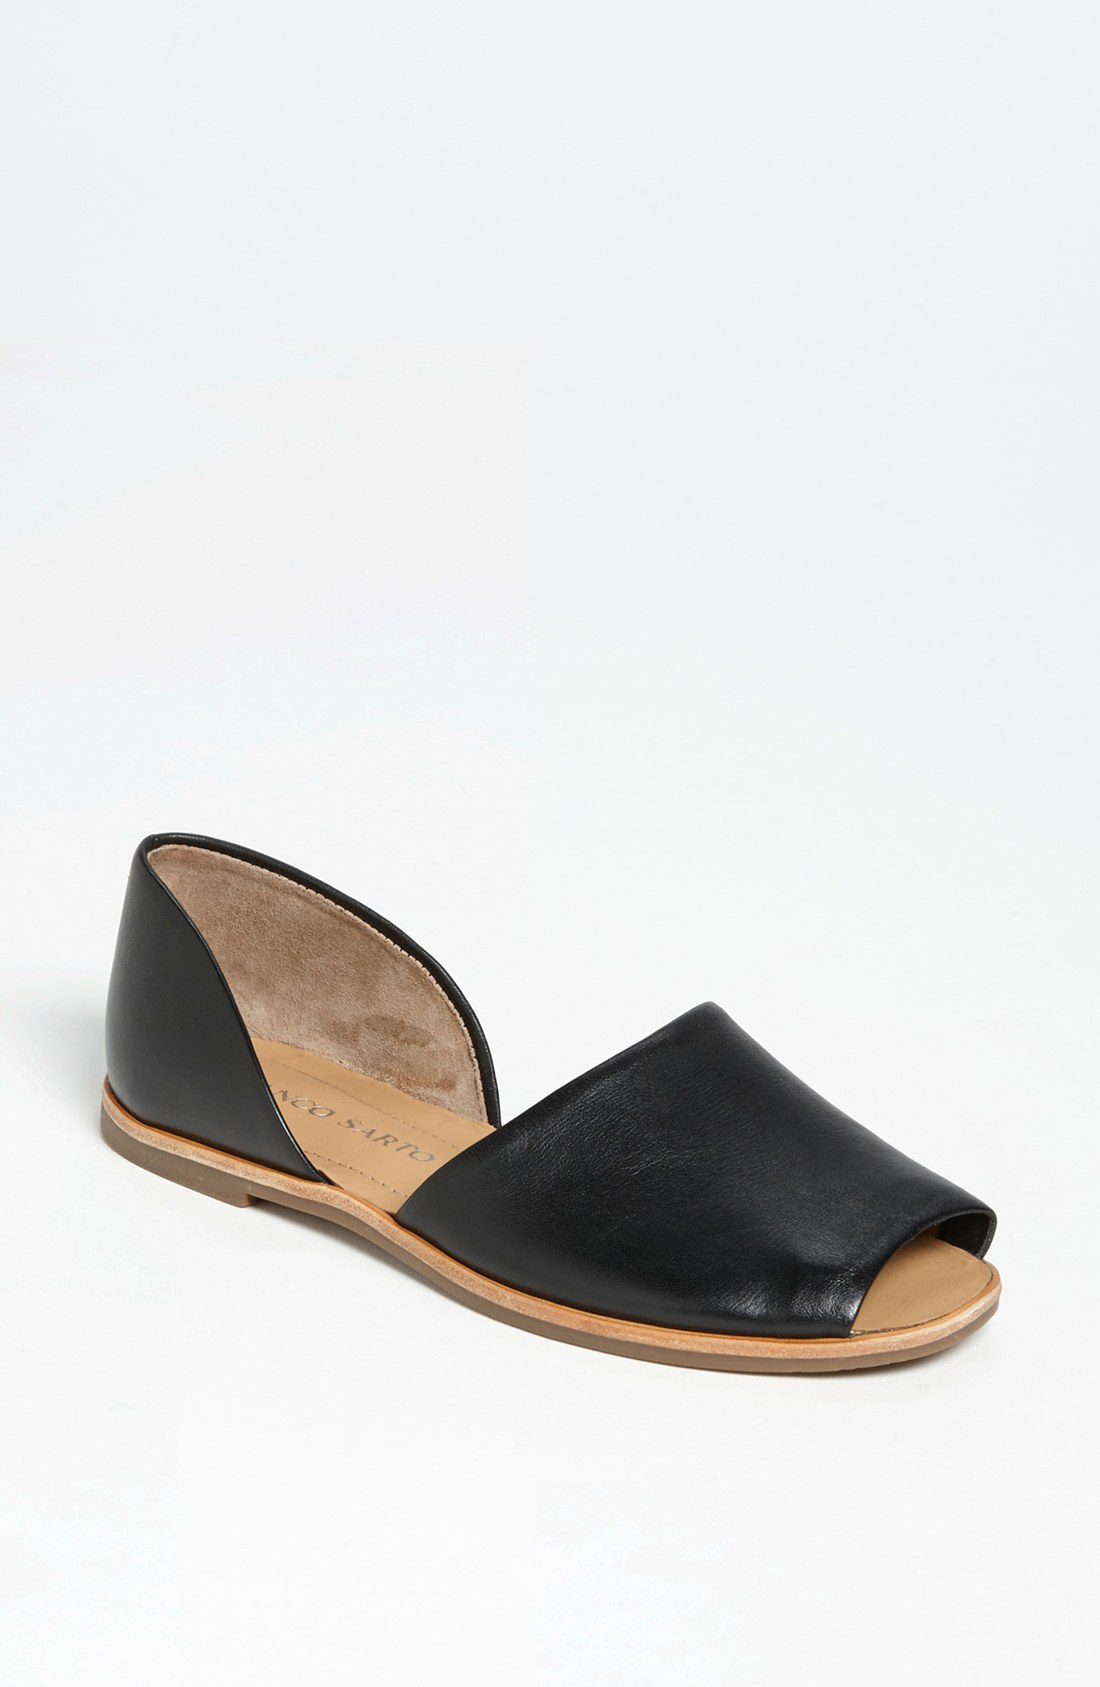 Franco Sarto Venezia Flat In Black Black Leather Lyst